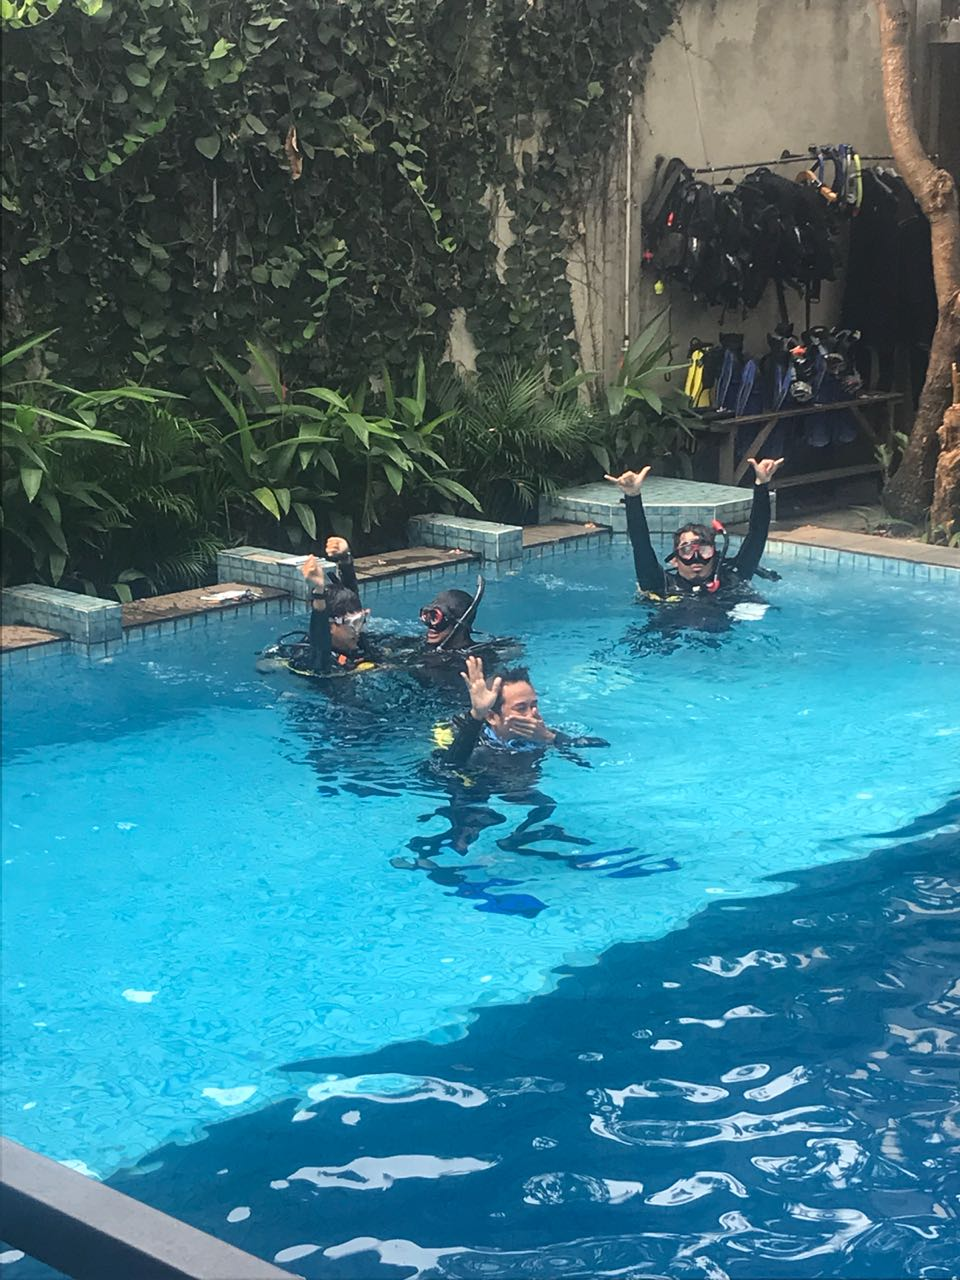 idc 2 - Road to Become PADI Instructor